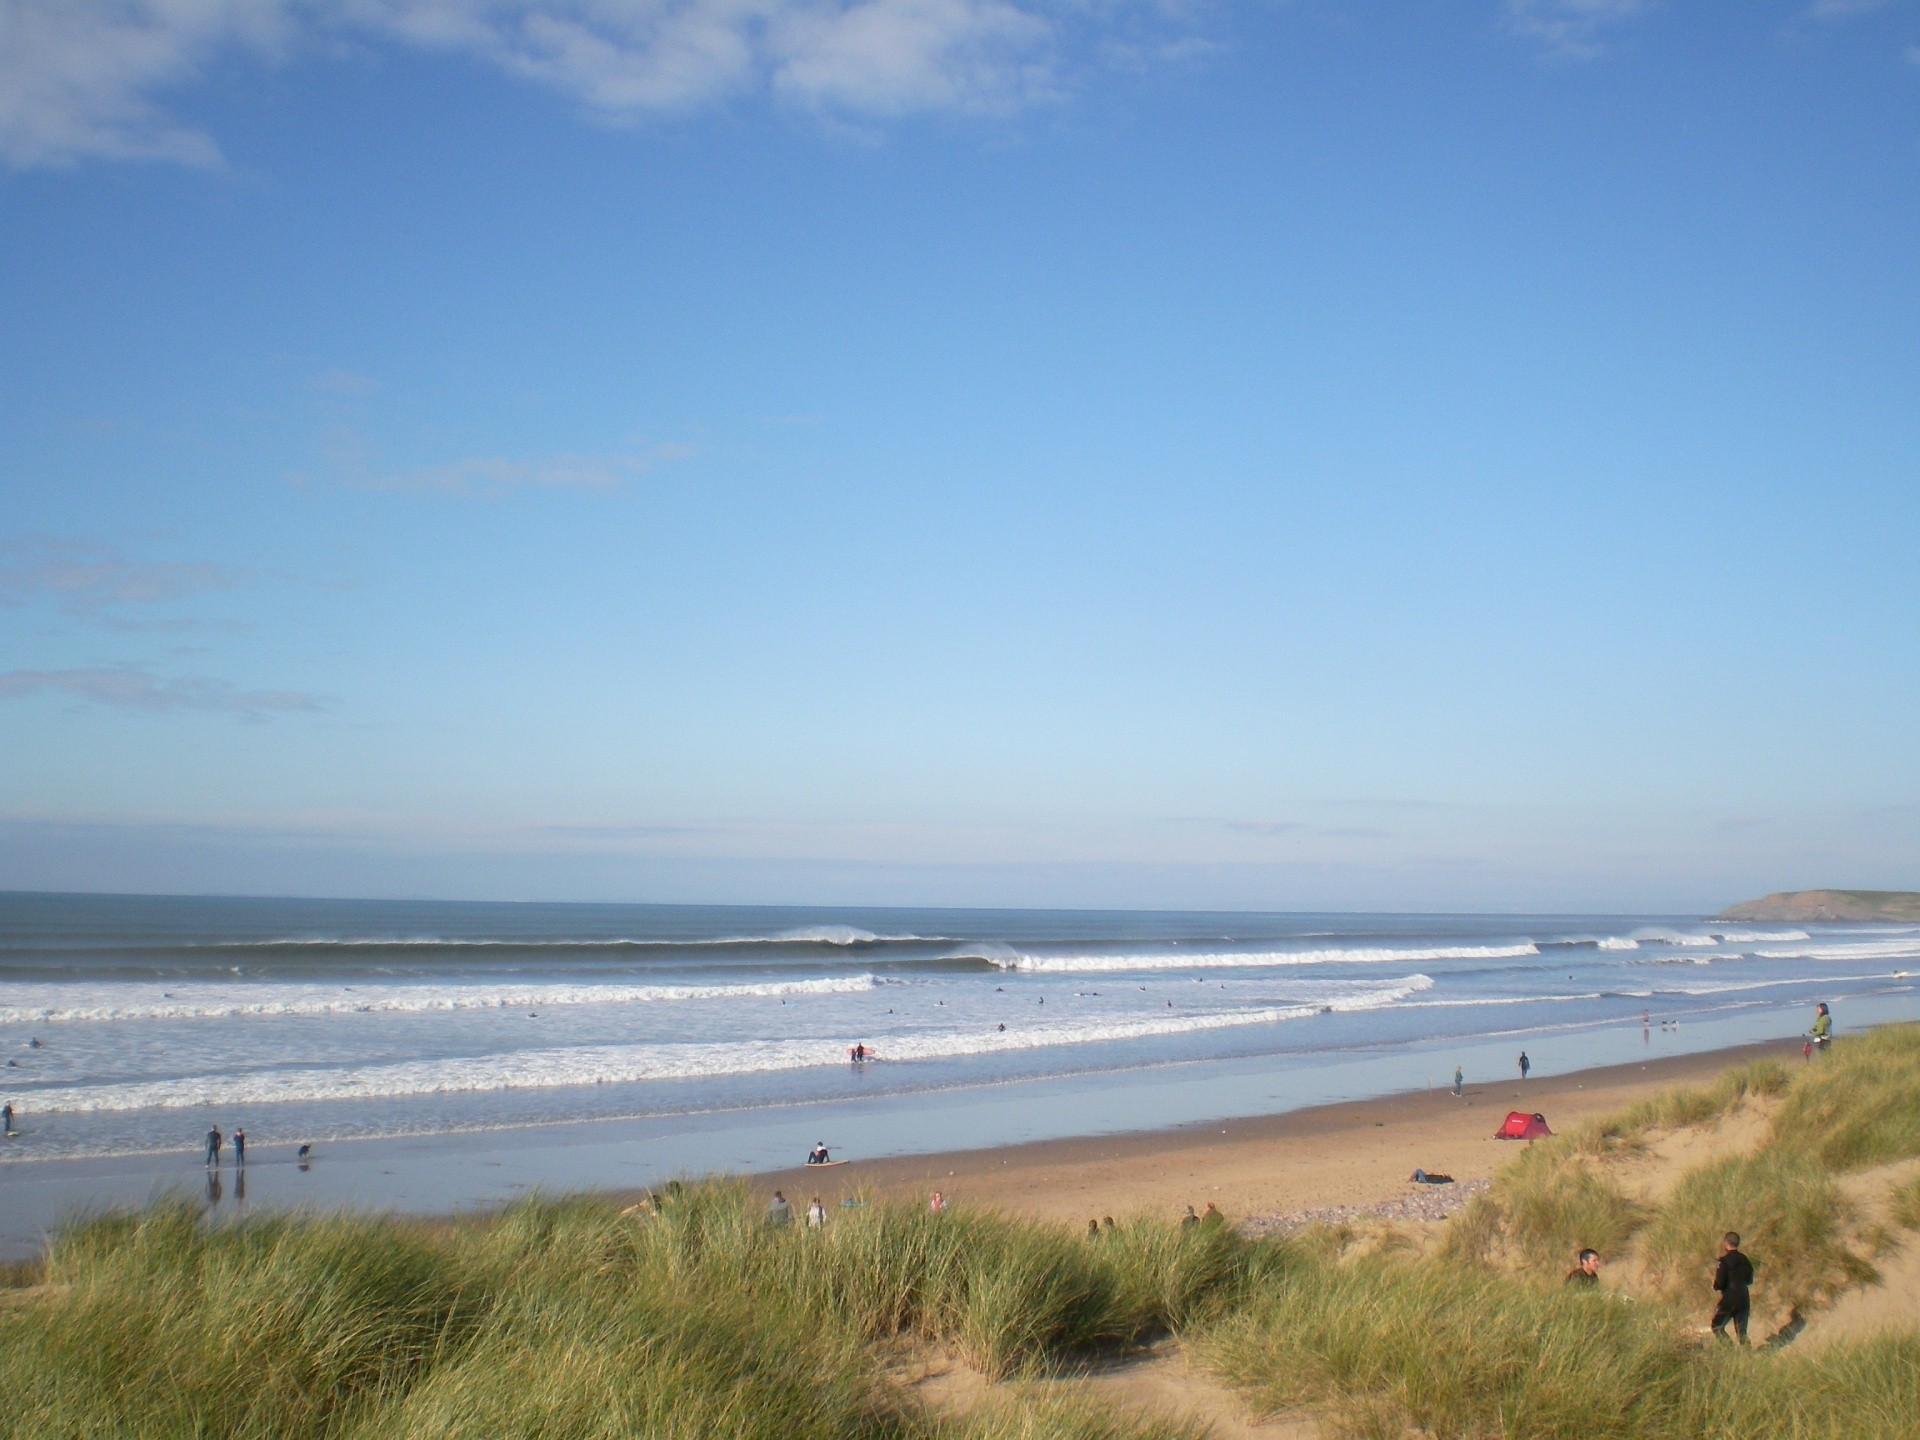 Surf seeker's photo of Llangennith / Rhossili